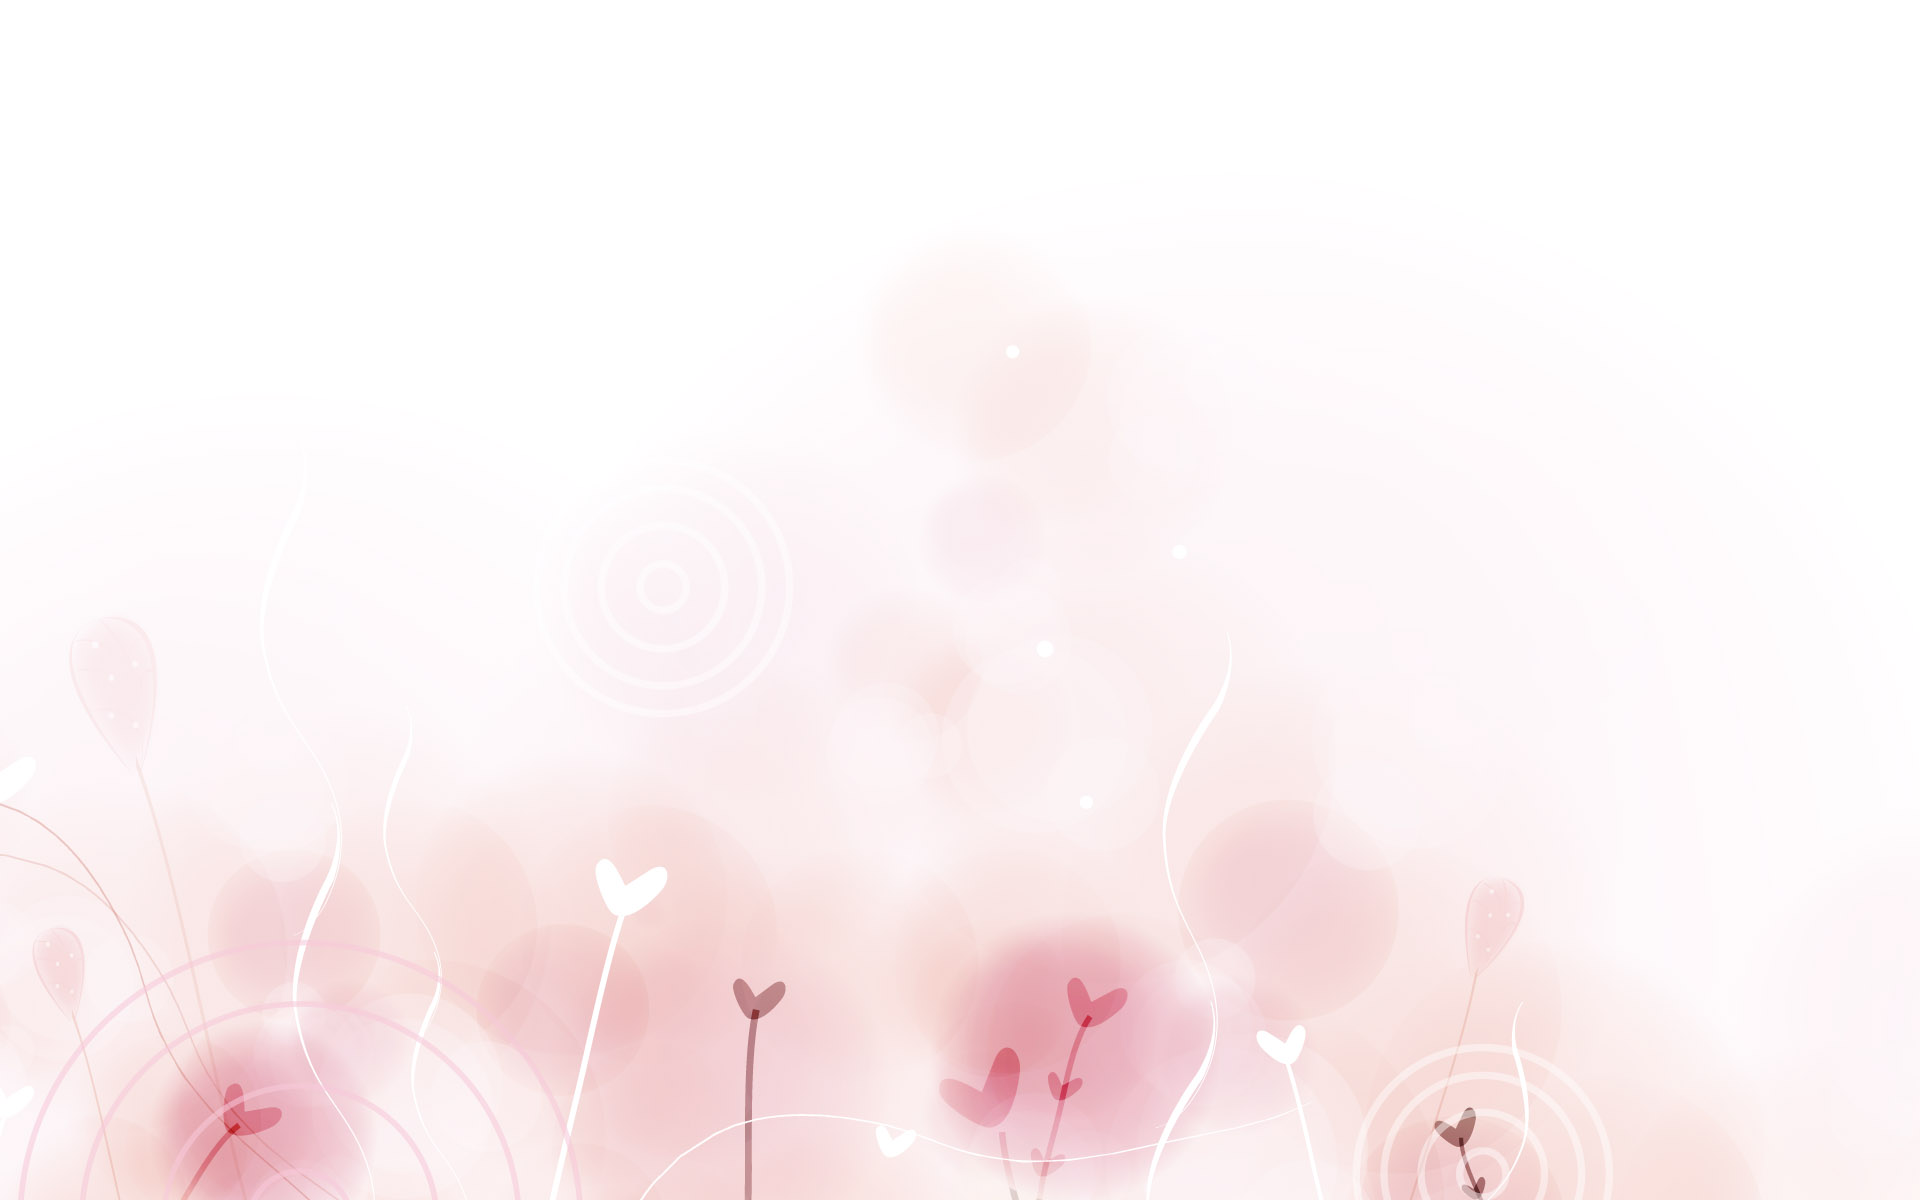 Pale pink background images  free pictures 1920x1200